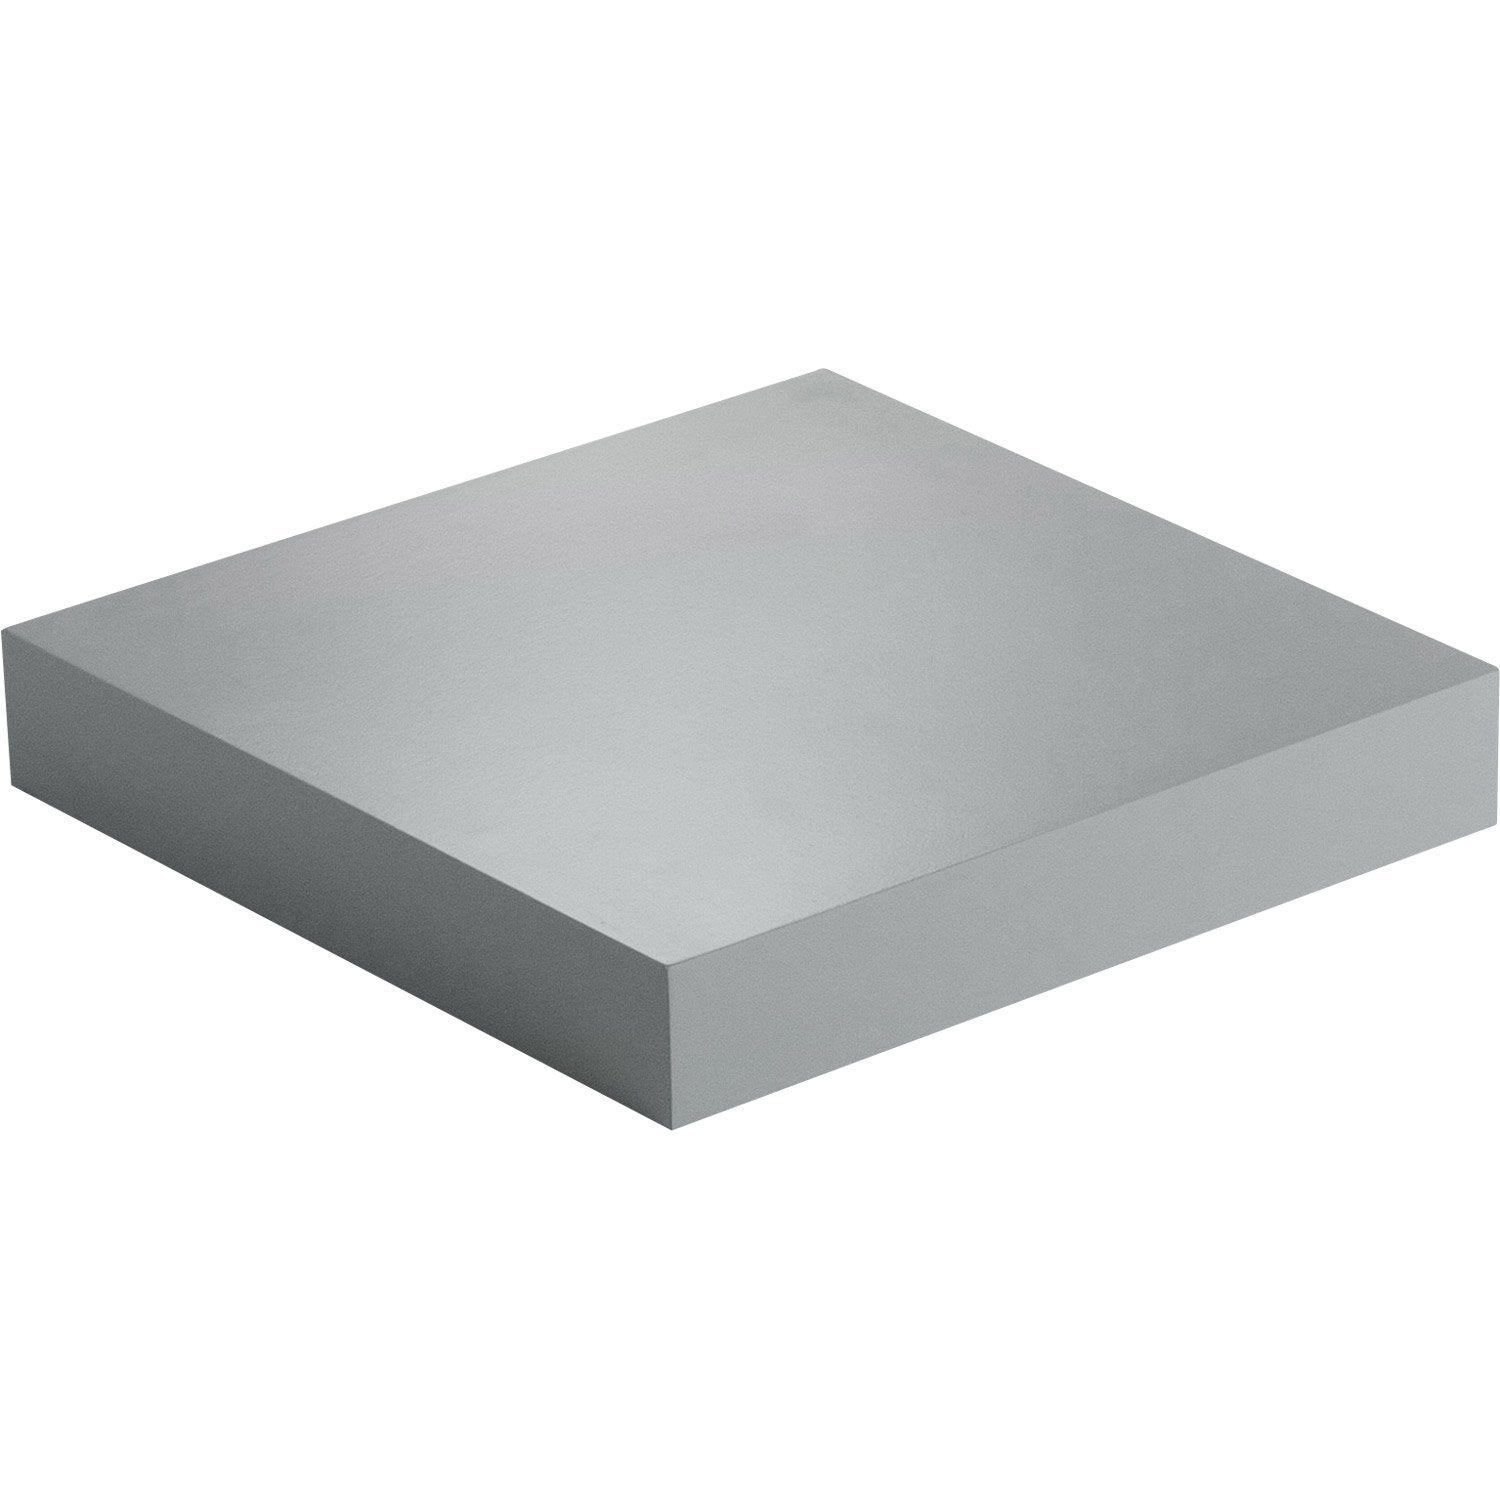 Etag re murale gris color spaceo l 23 5 x p 23 5 cm p - Tablette chene leroy merlin ...